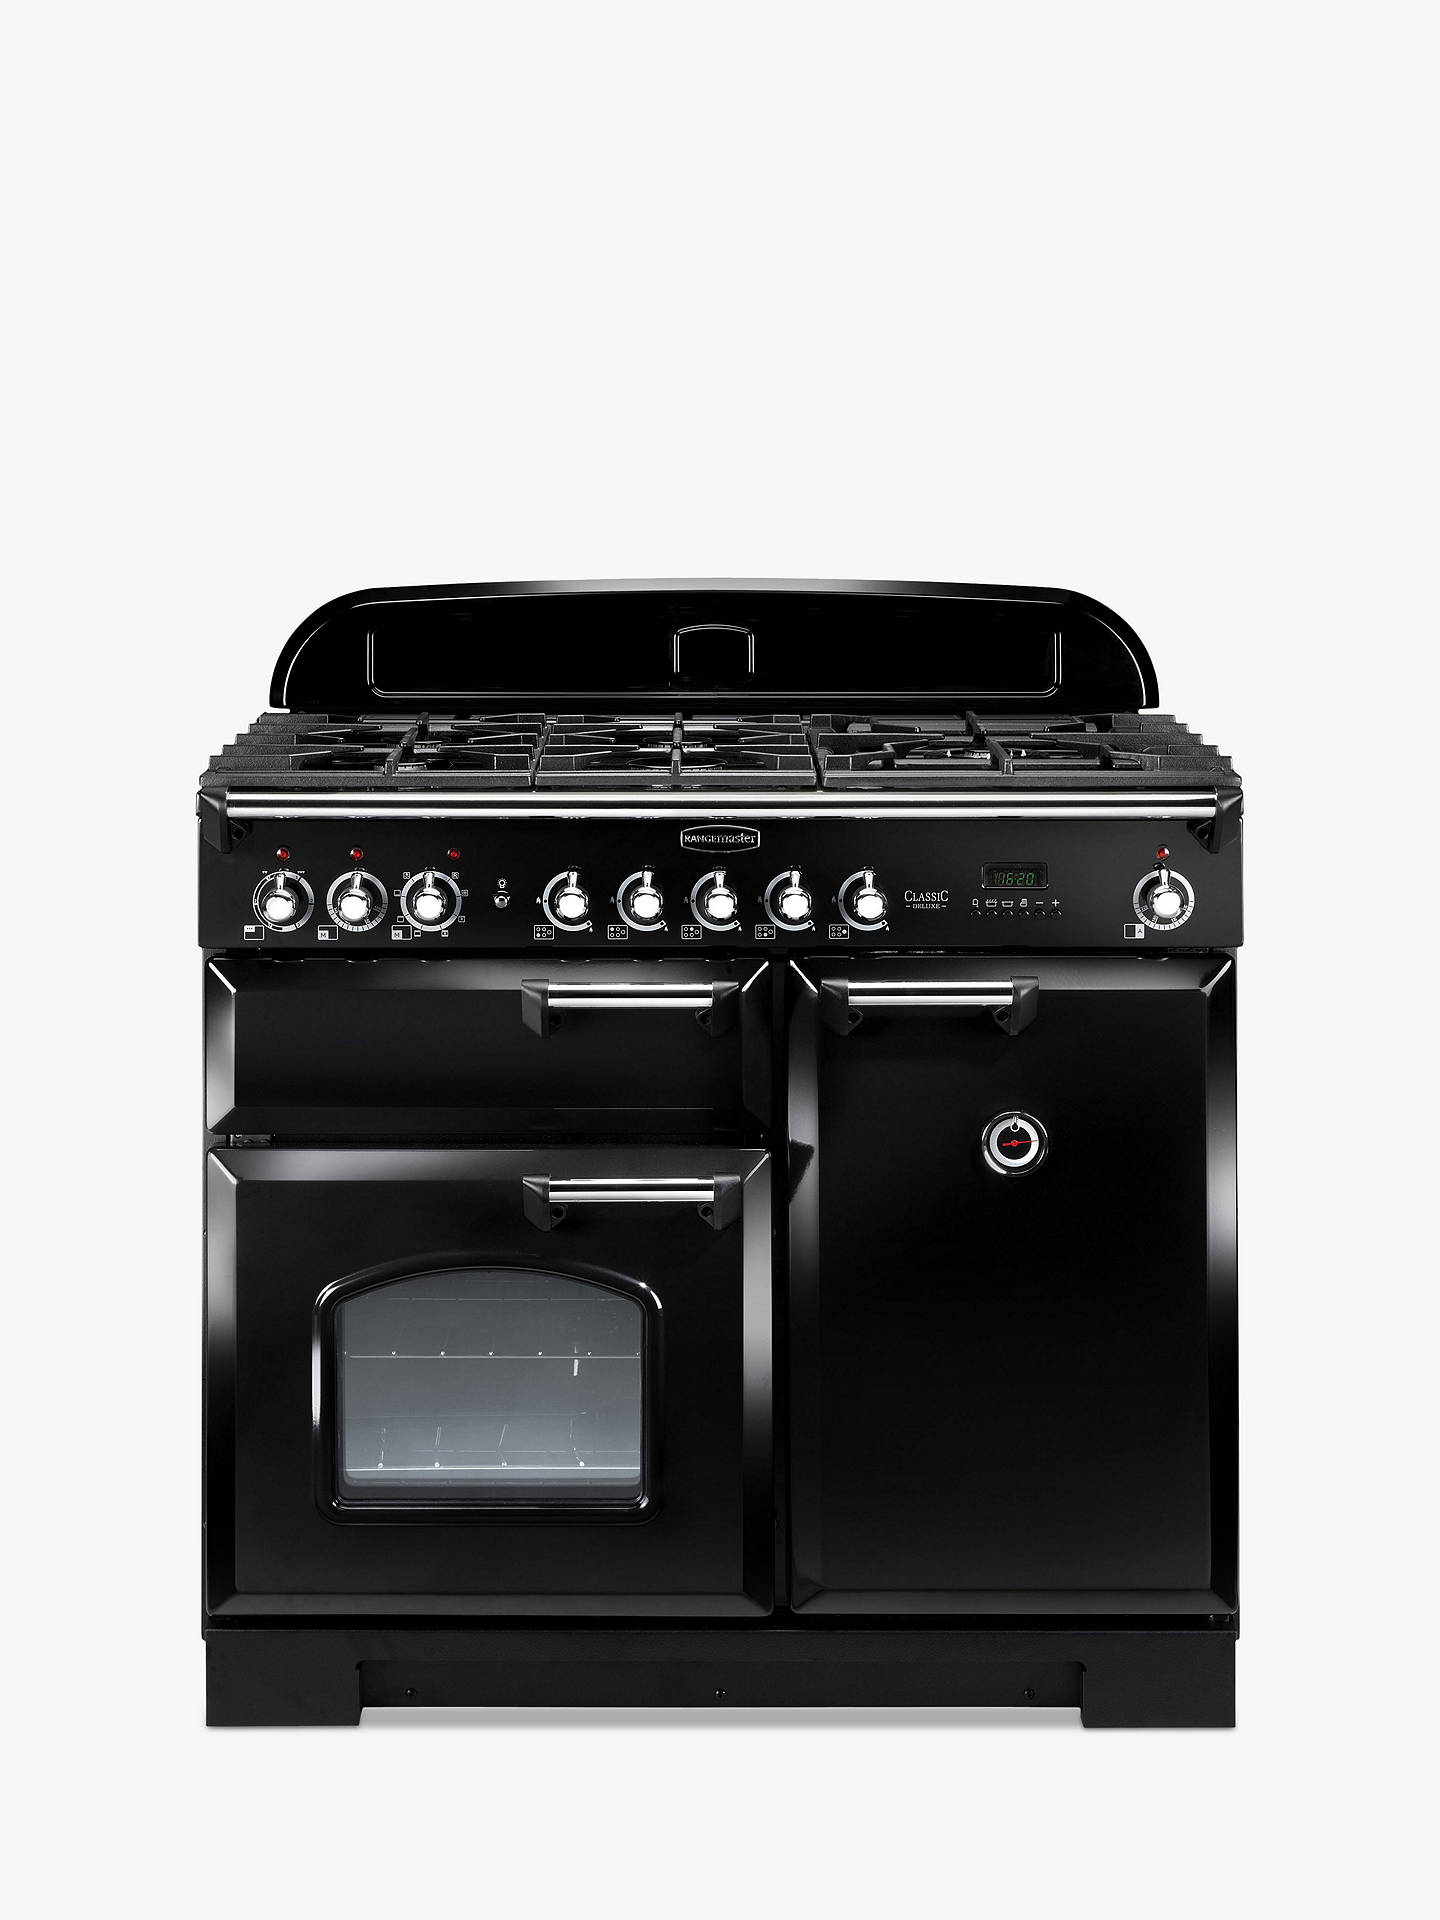 Buy Rangemaster Classic Deluxe 100 Dual Fuel Range Cooker, Black/Chrome Trim Online at johnlewis.com